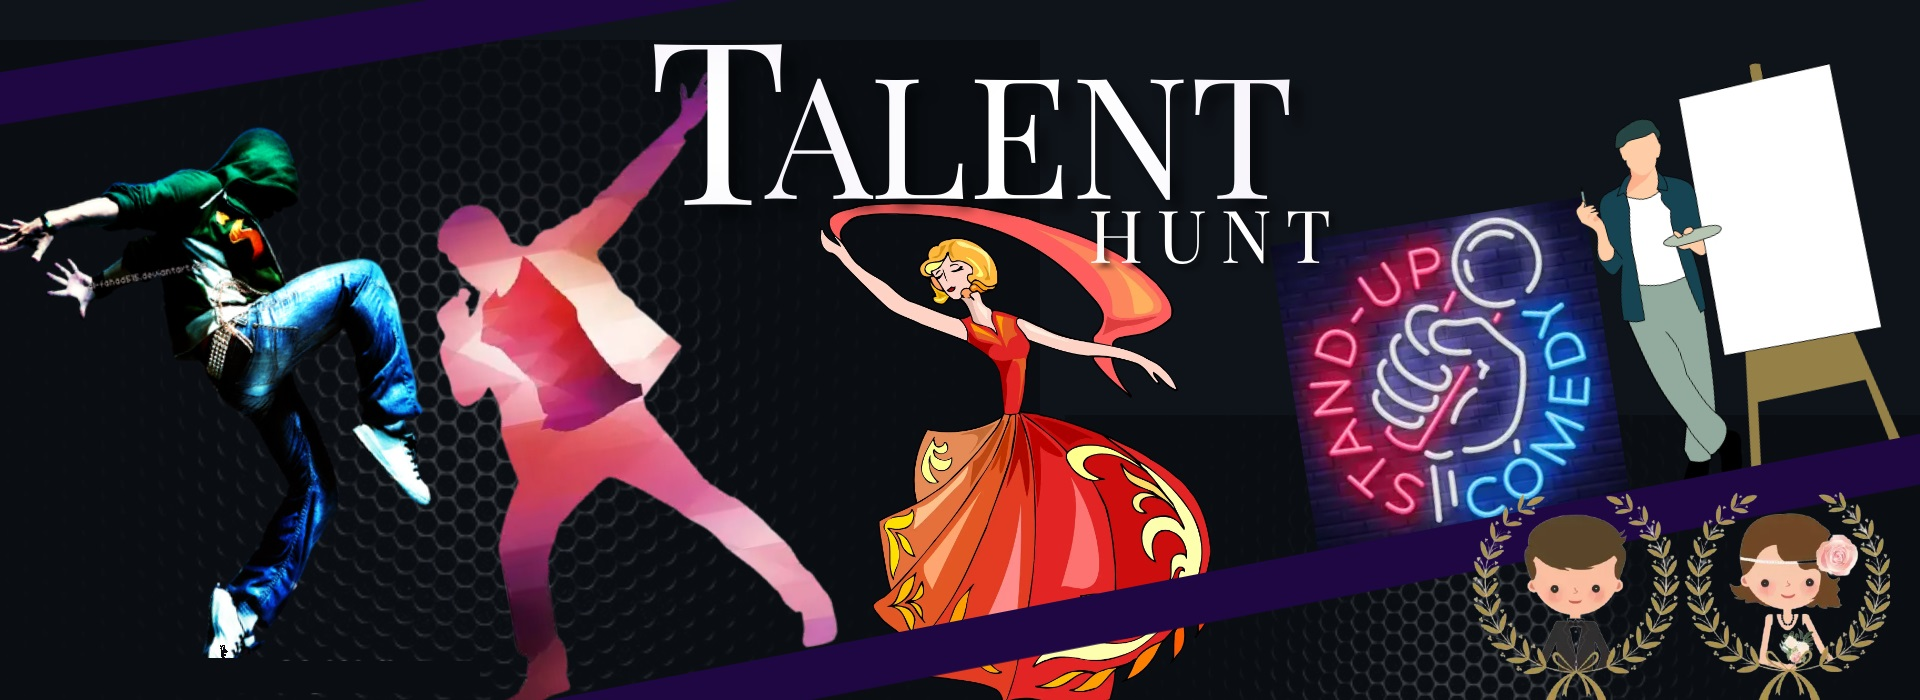 talent hunt blessing foundation